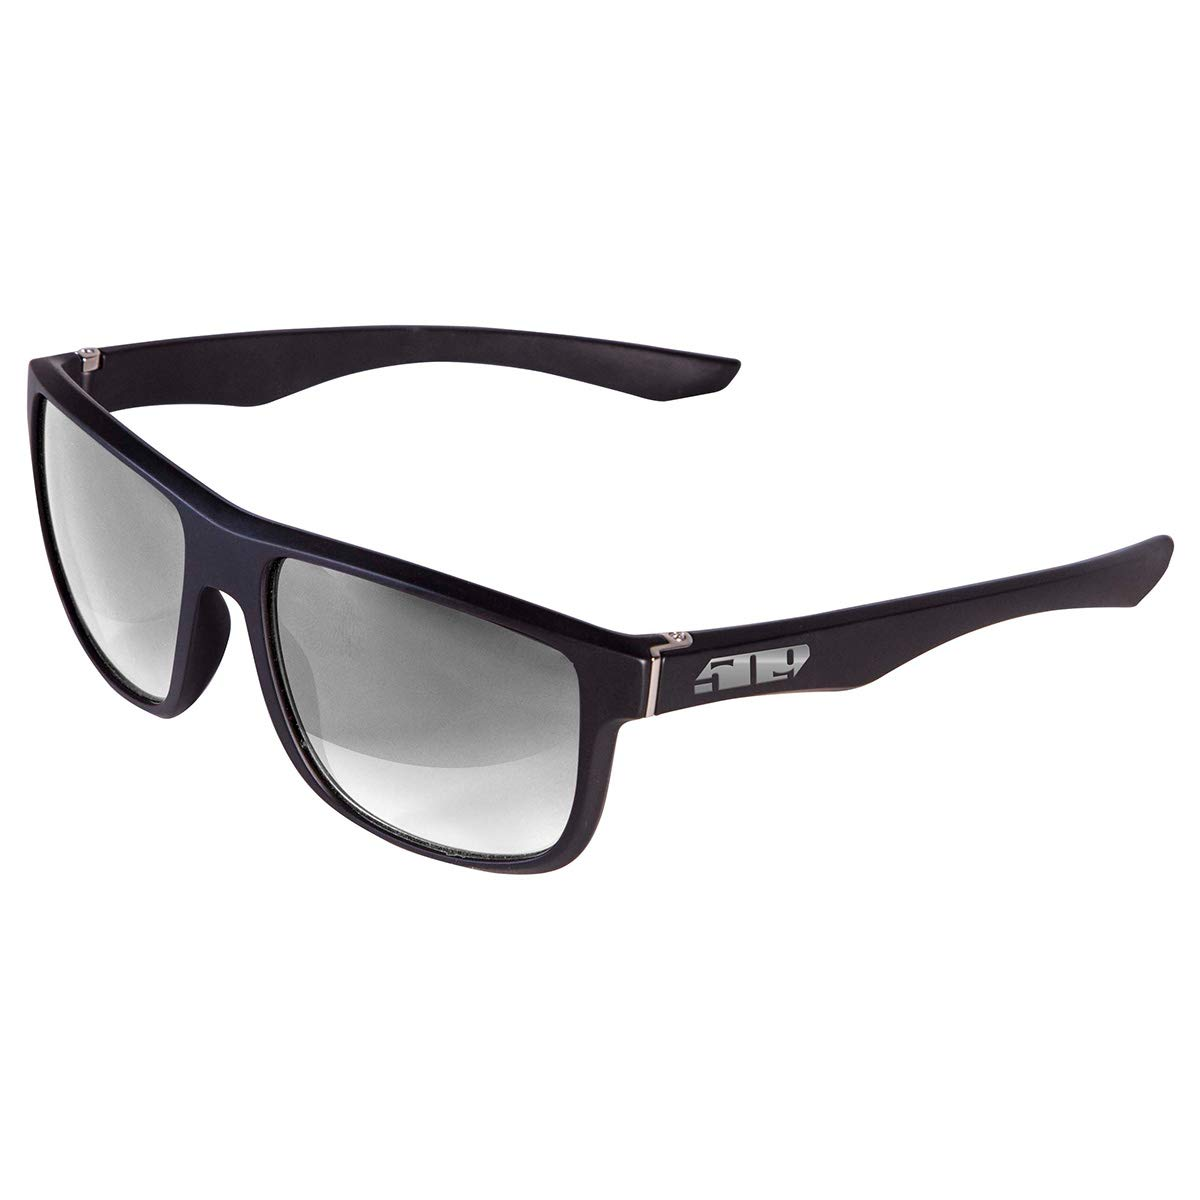 Amazon.com: 509 Riverside - Gafas de sol polarizadas: Automotive